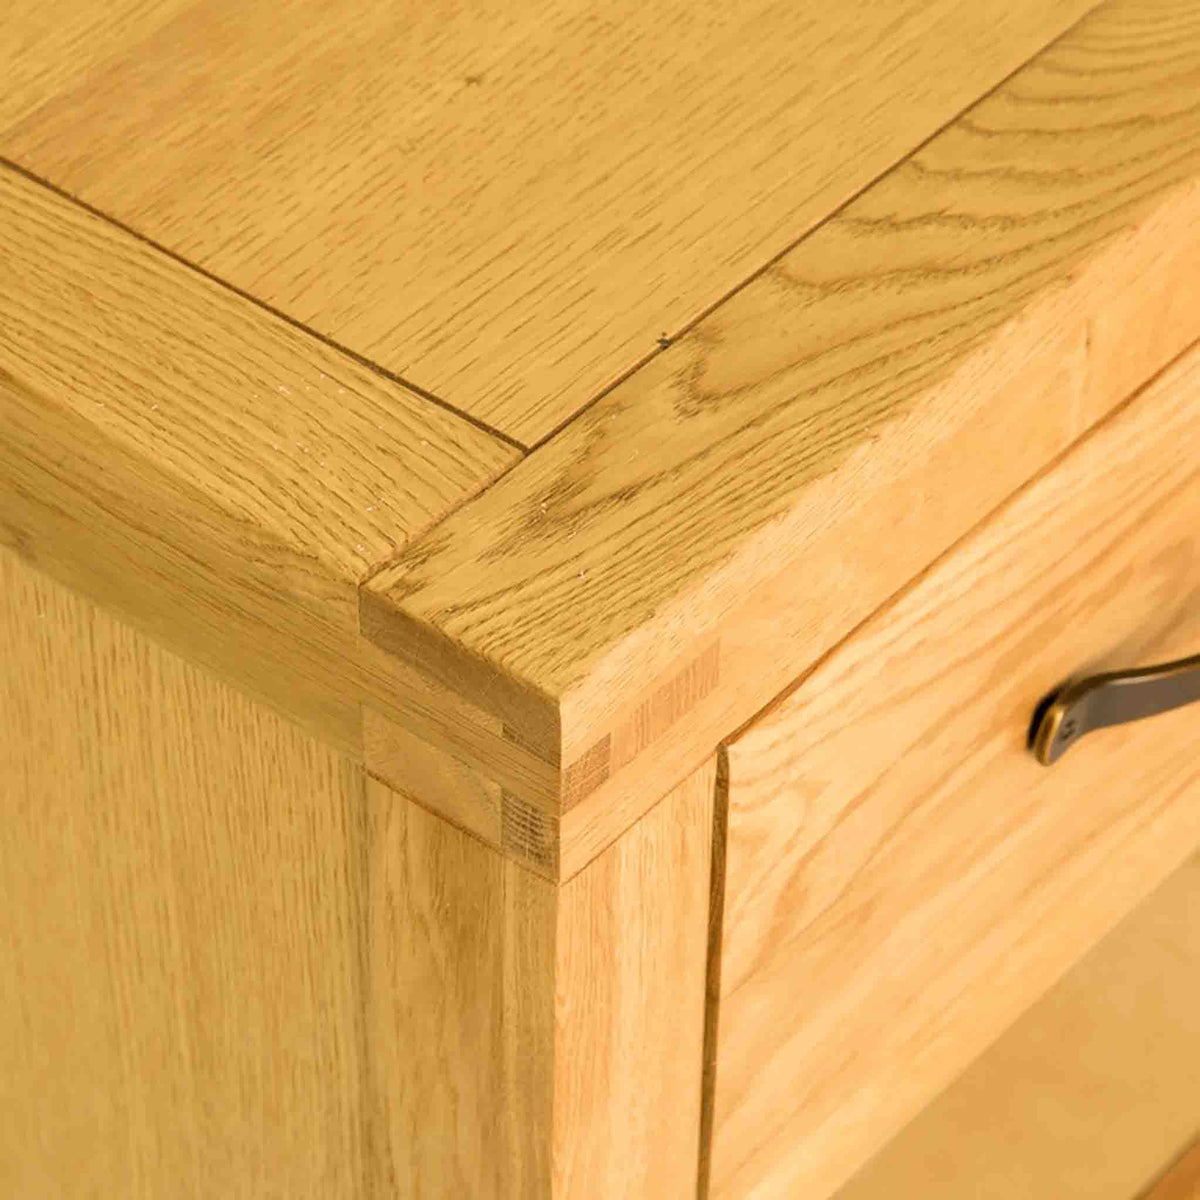 Top left corner view of the Abbey Waxed Oak Large Sideboard 3 Door Cabinet